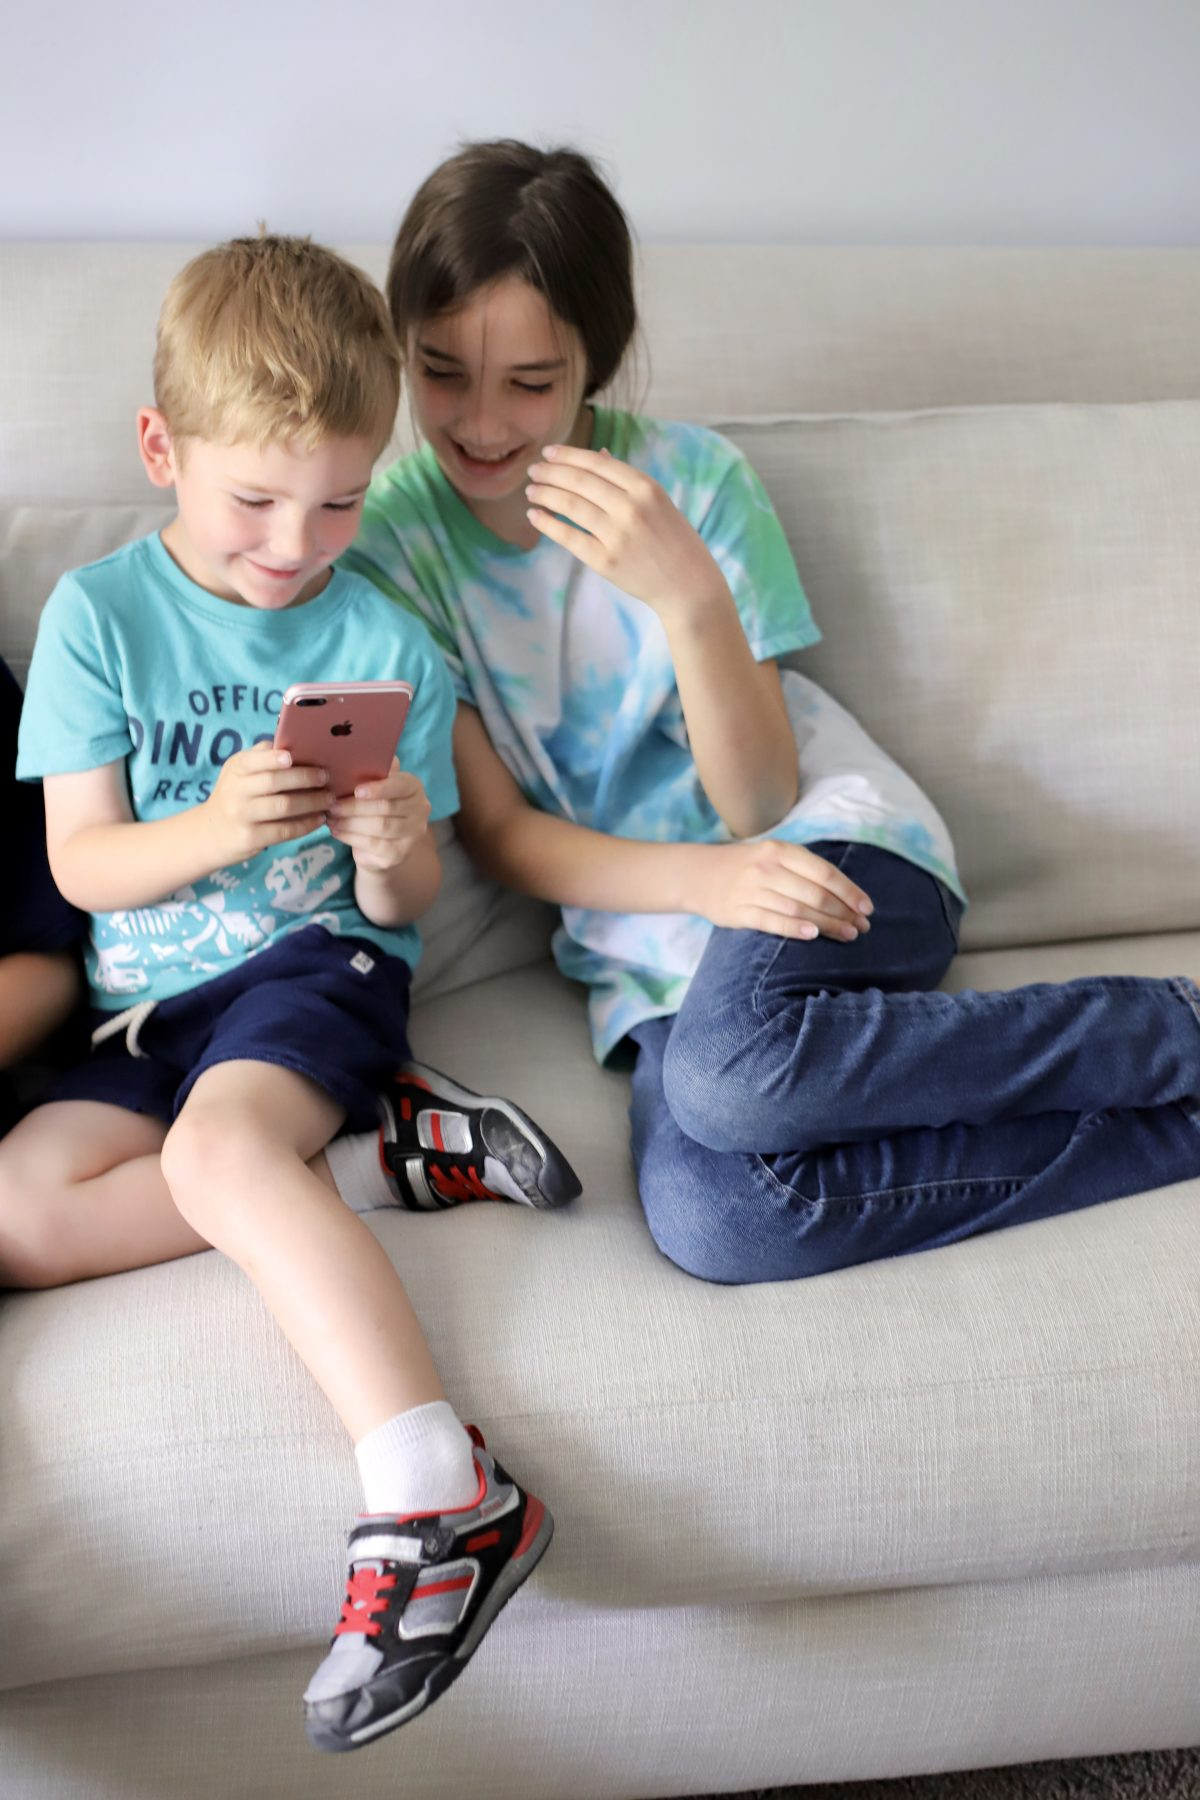 Kids playing on an iphone.